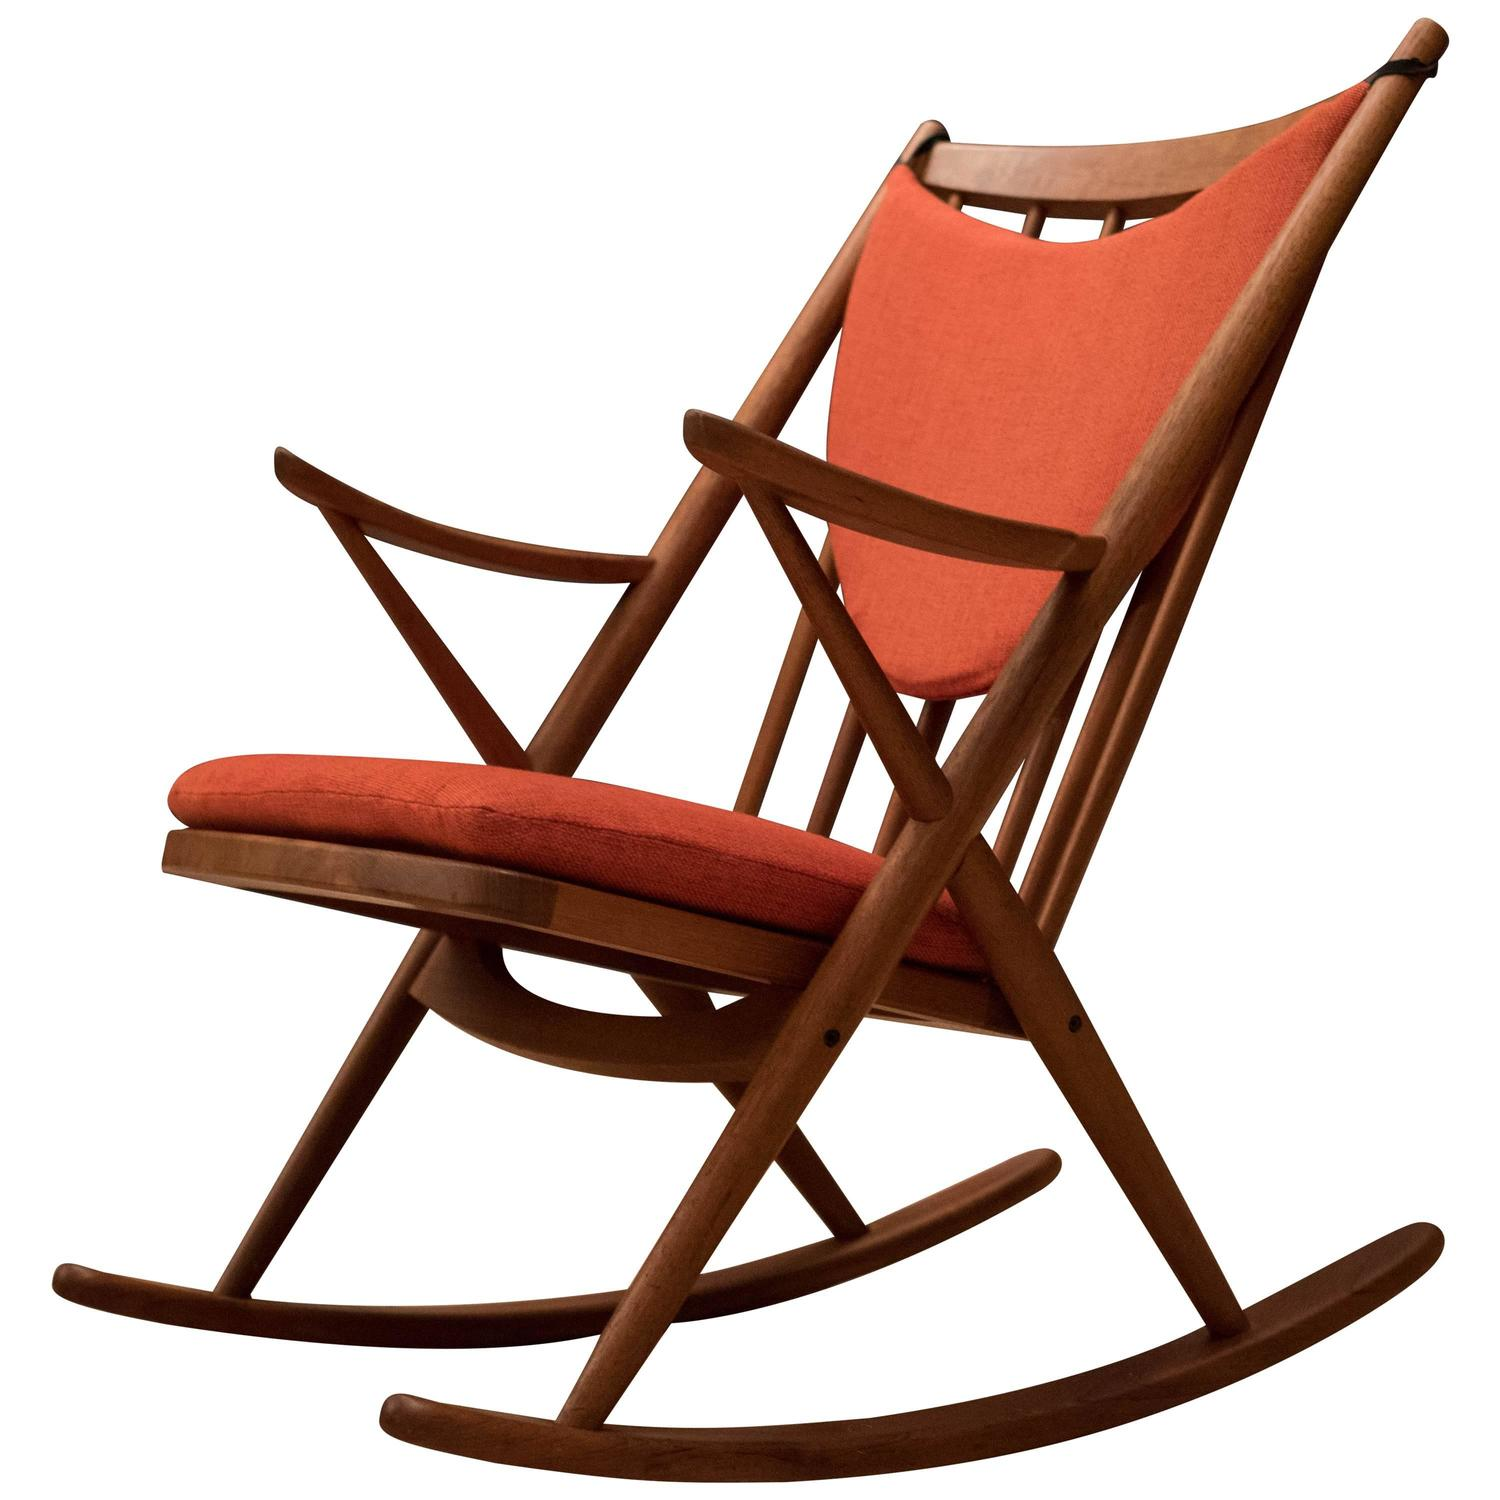 vintage danish bramin teak rocking chair for sale at 1stdibs. Black Bedroom Furniture Sets. Home Design Ideas